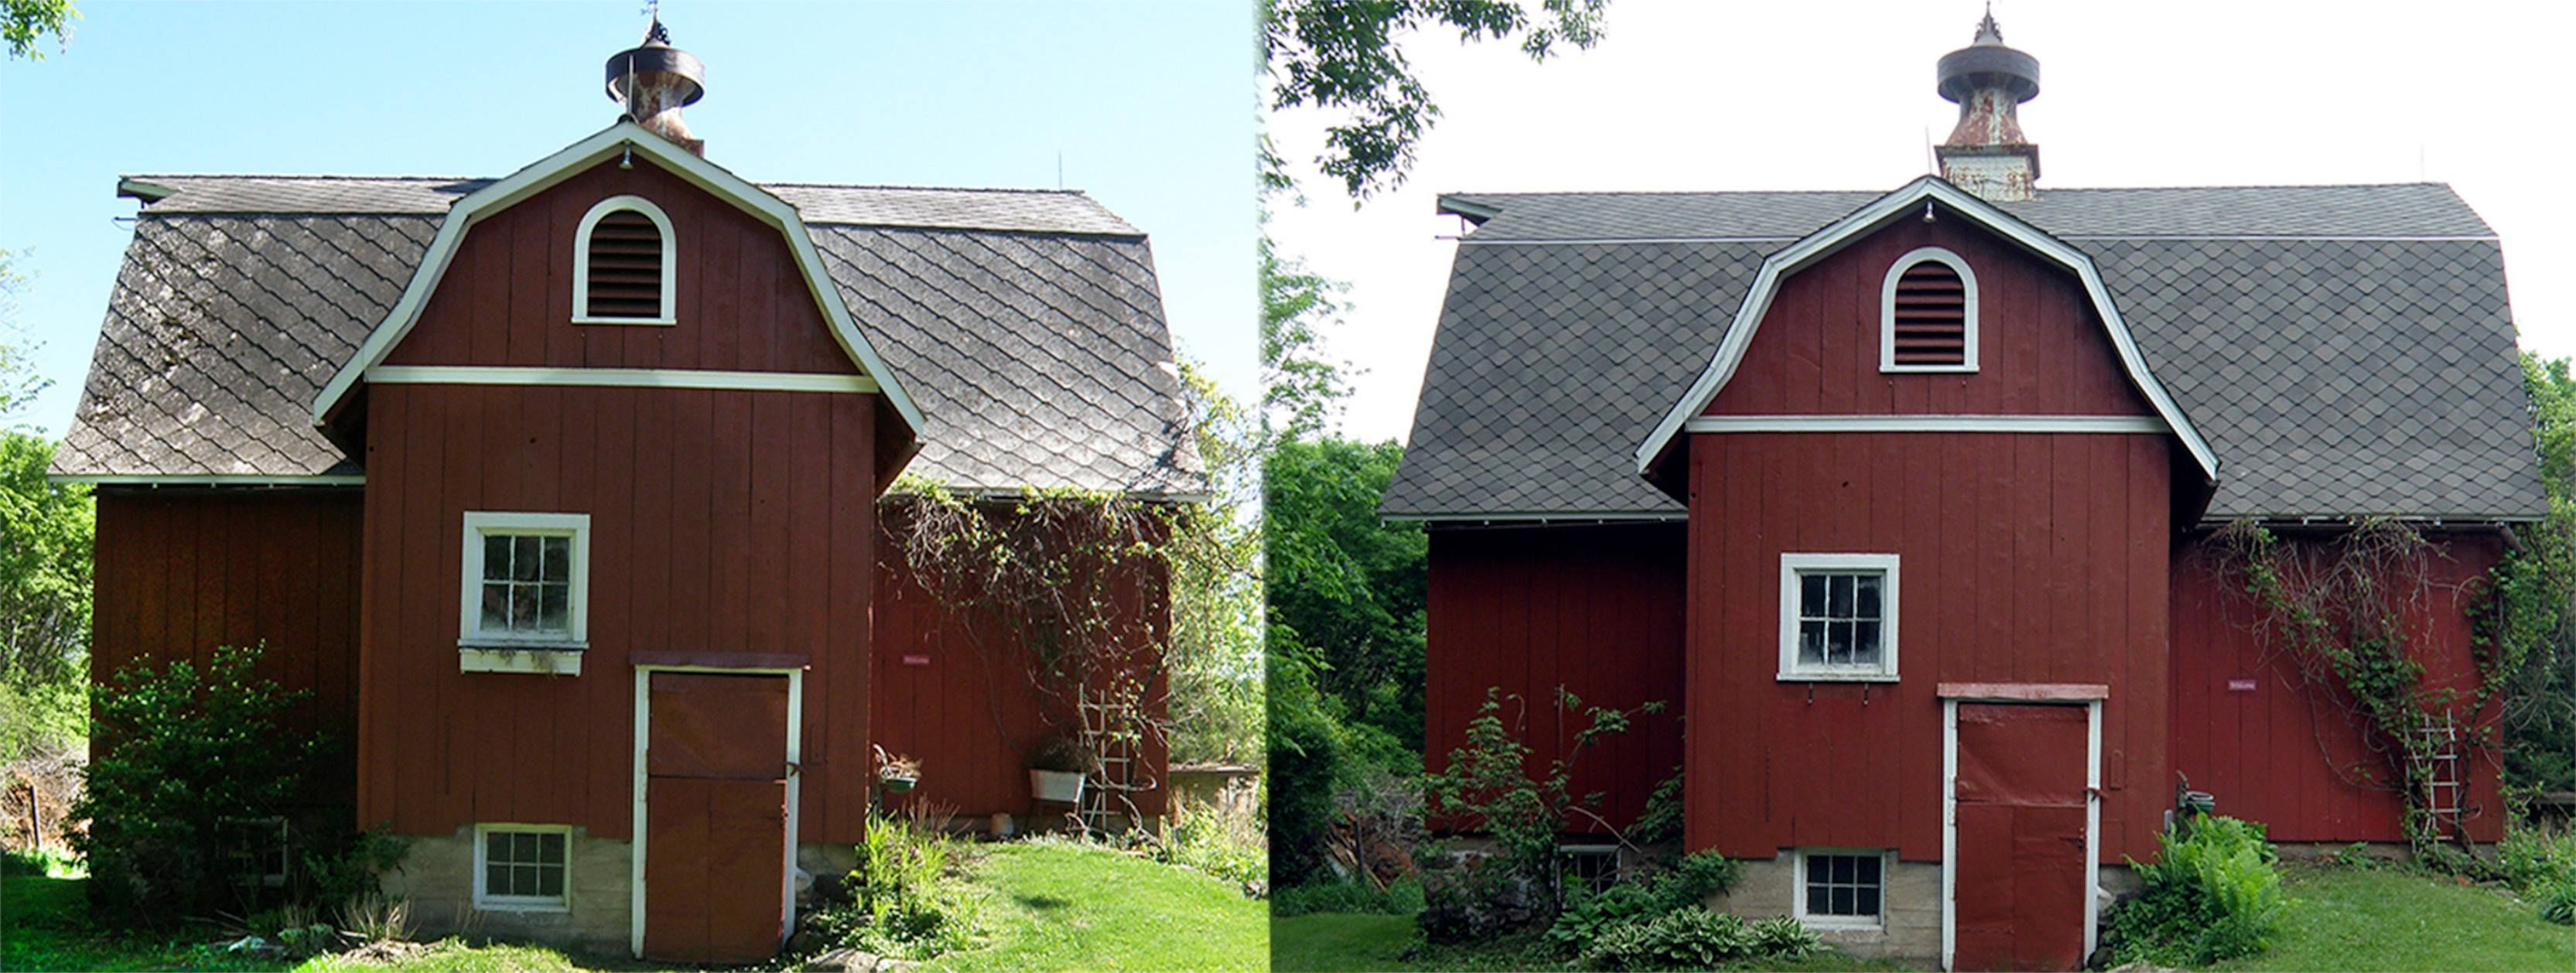 Before & After Pics of a Barn in Hudson WI with GAF SIenna Lifetime